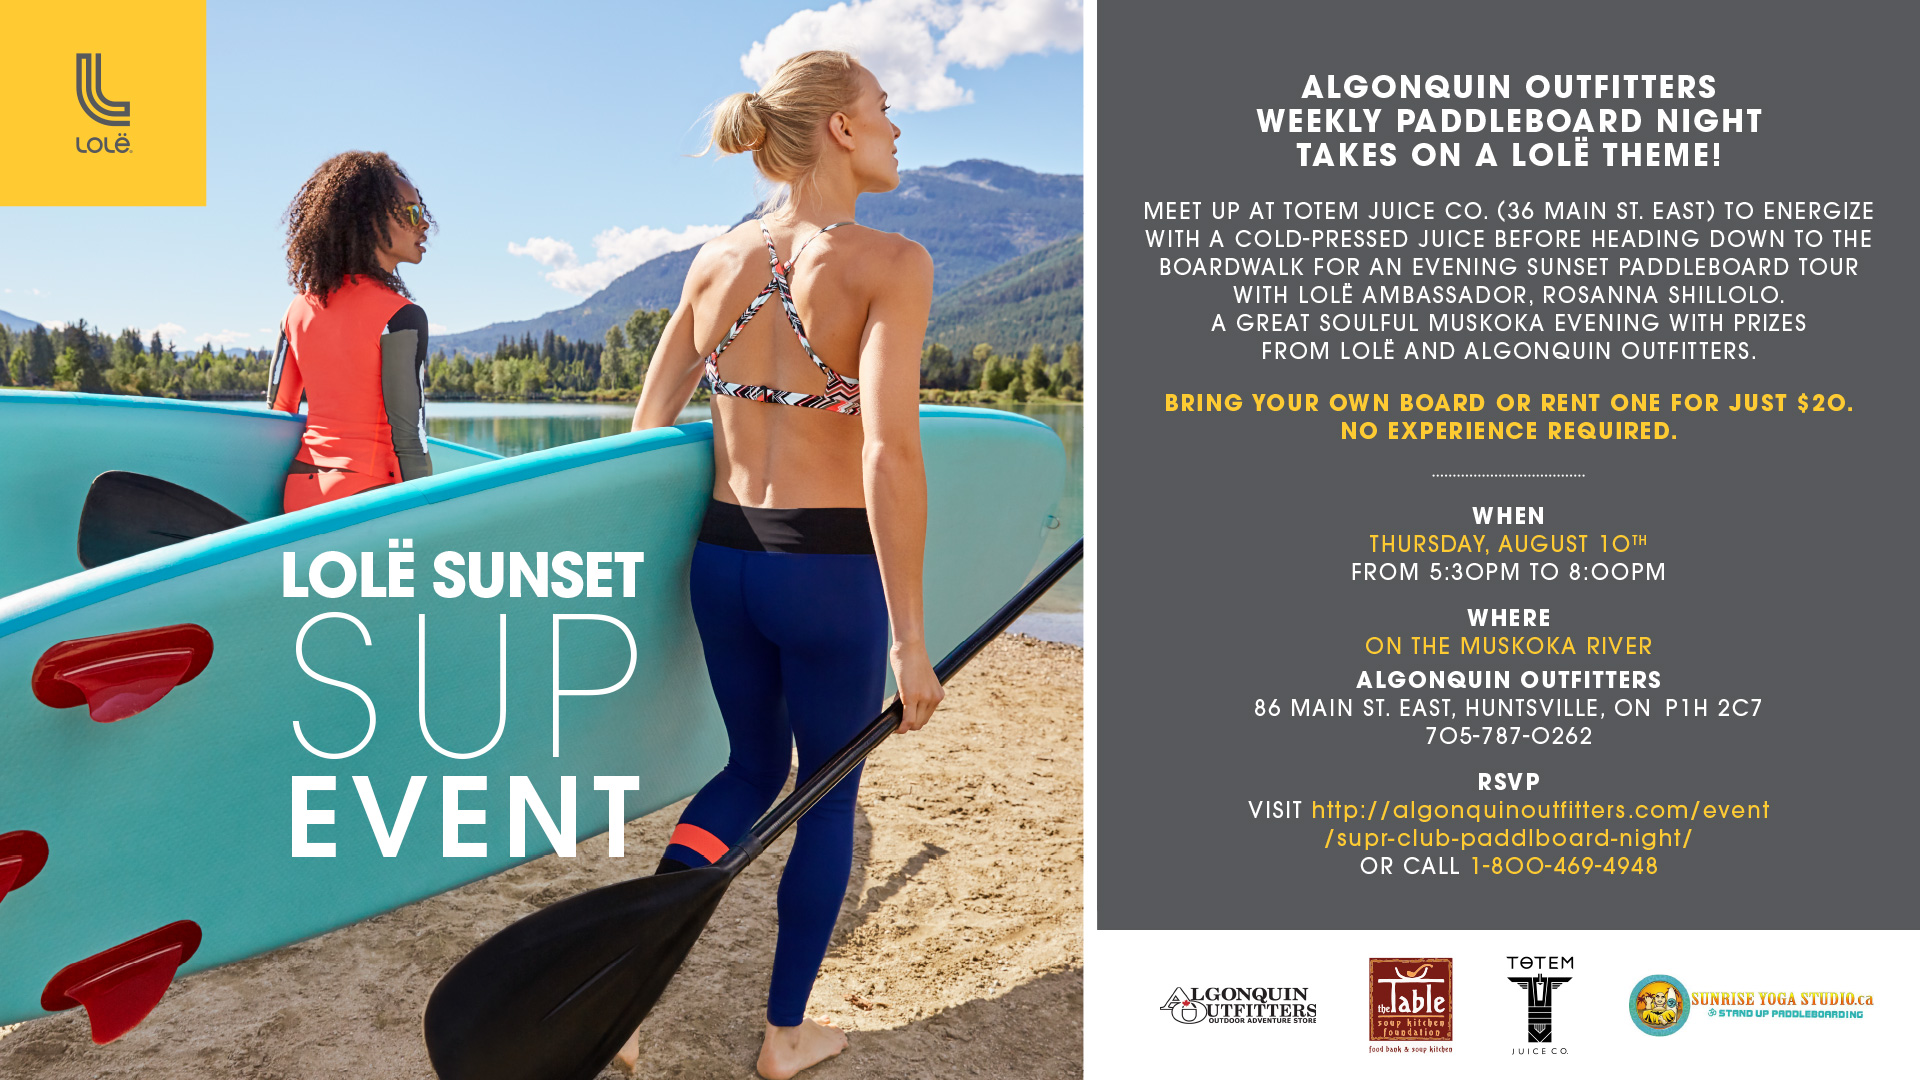 Lole SUP Event